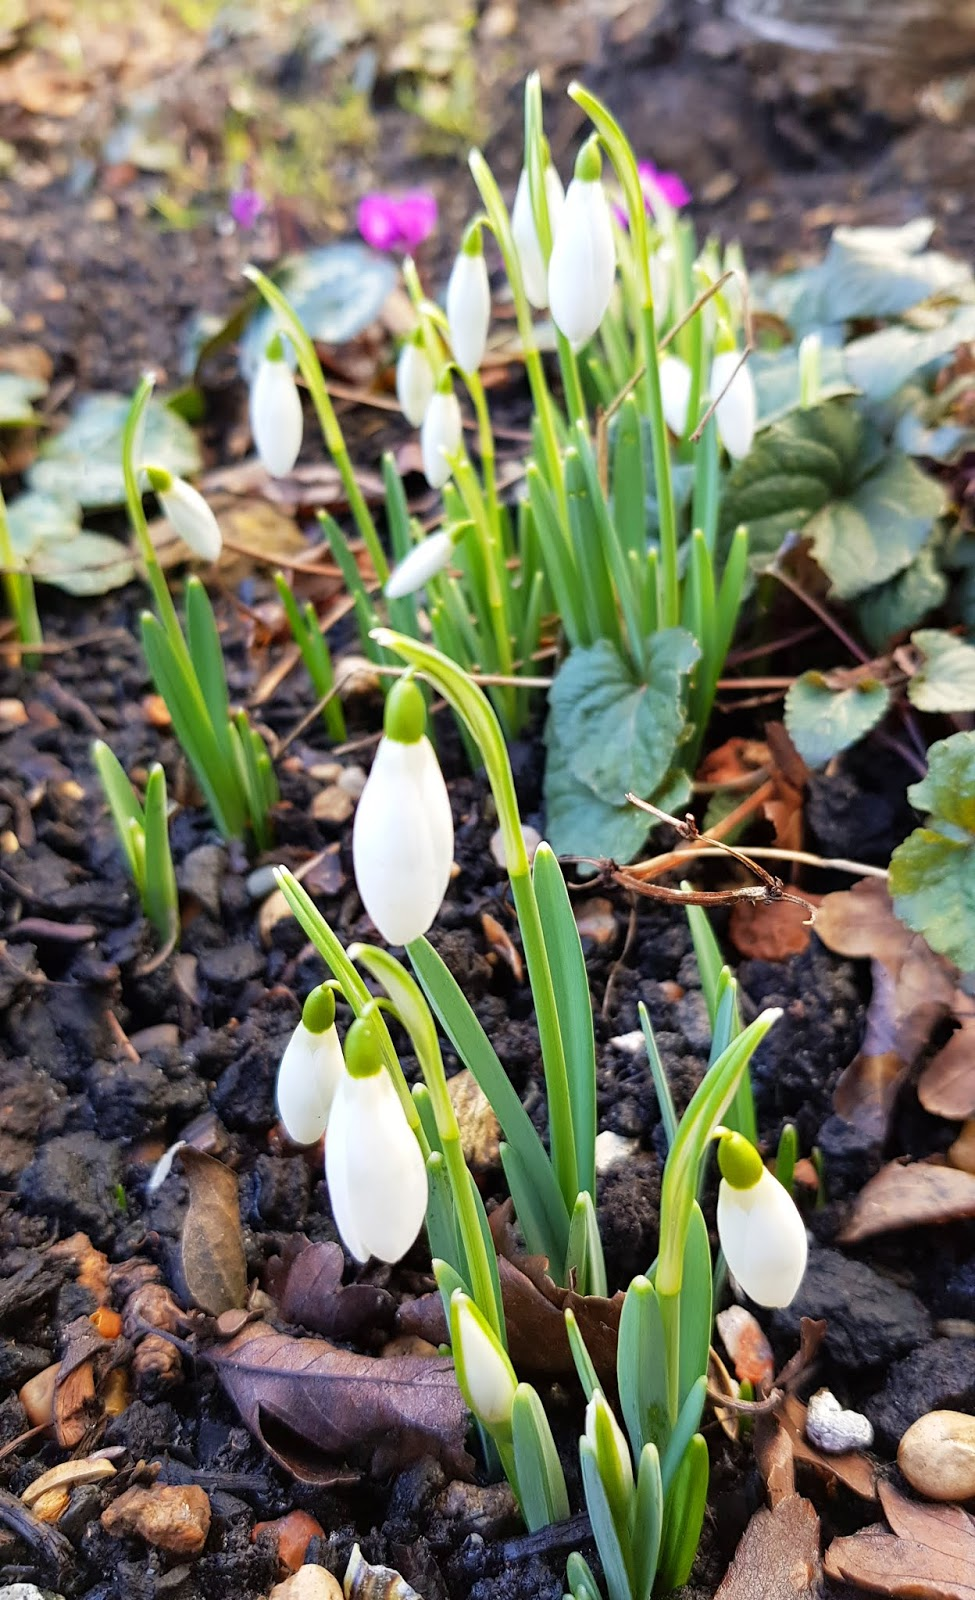 Snowdrops in the garden, London 2019